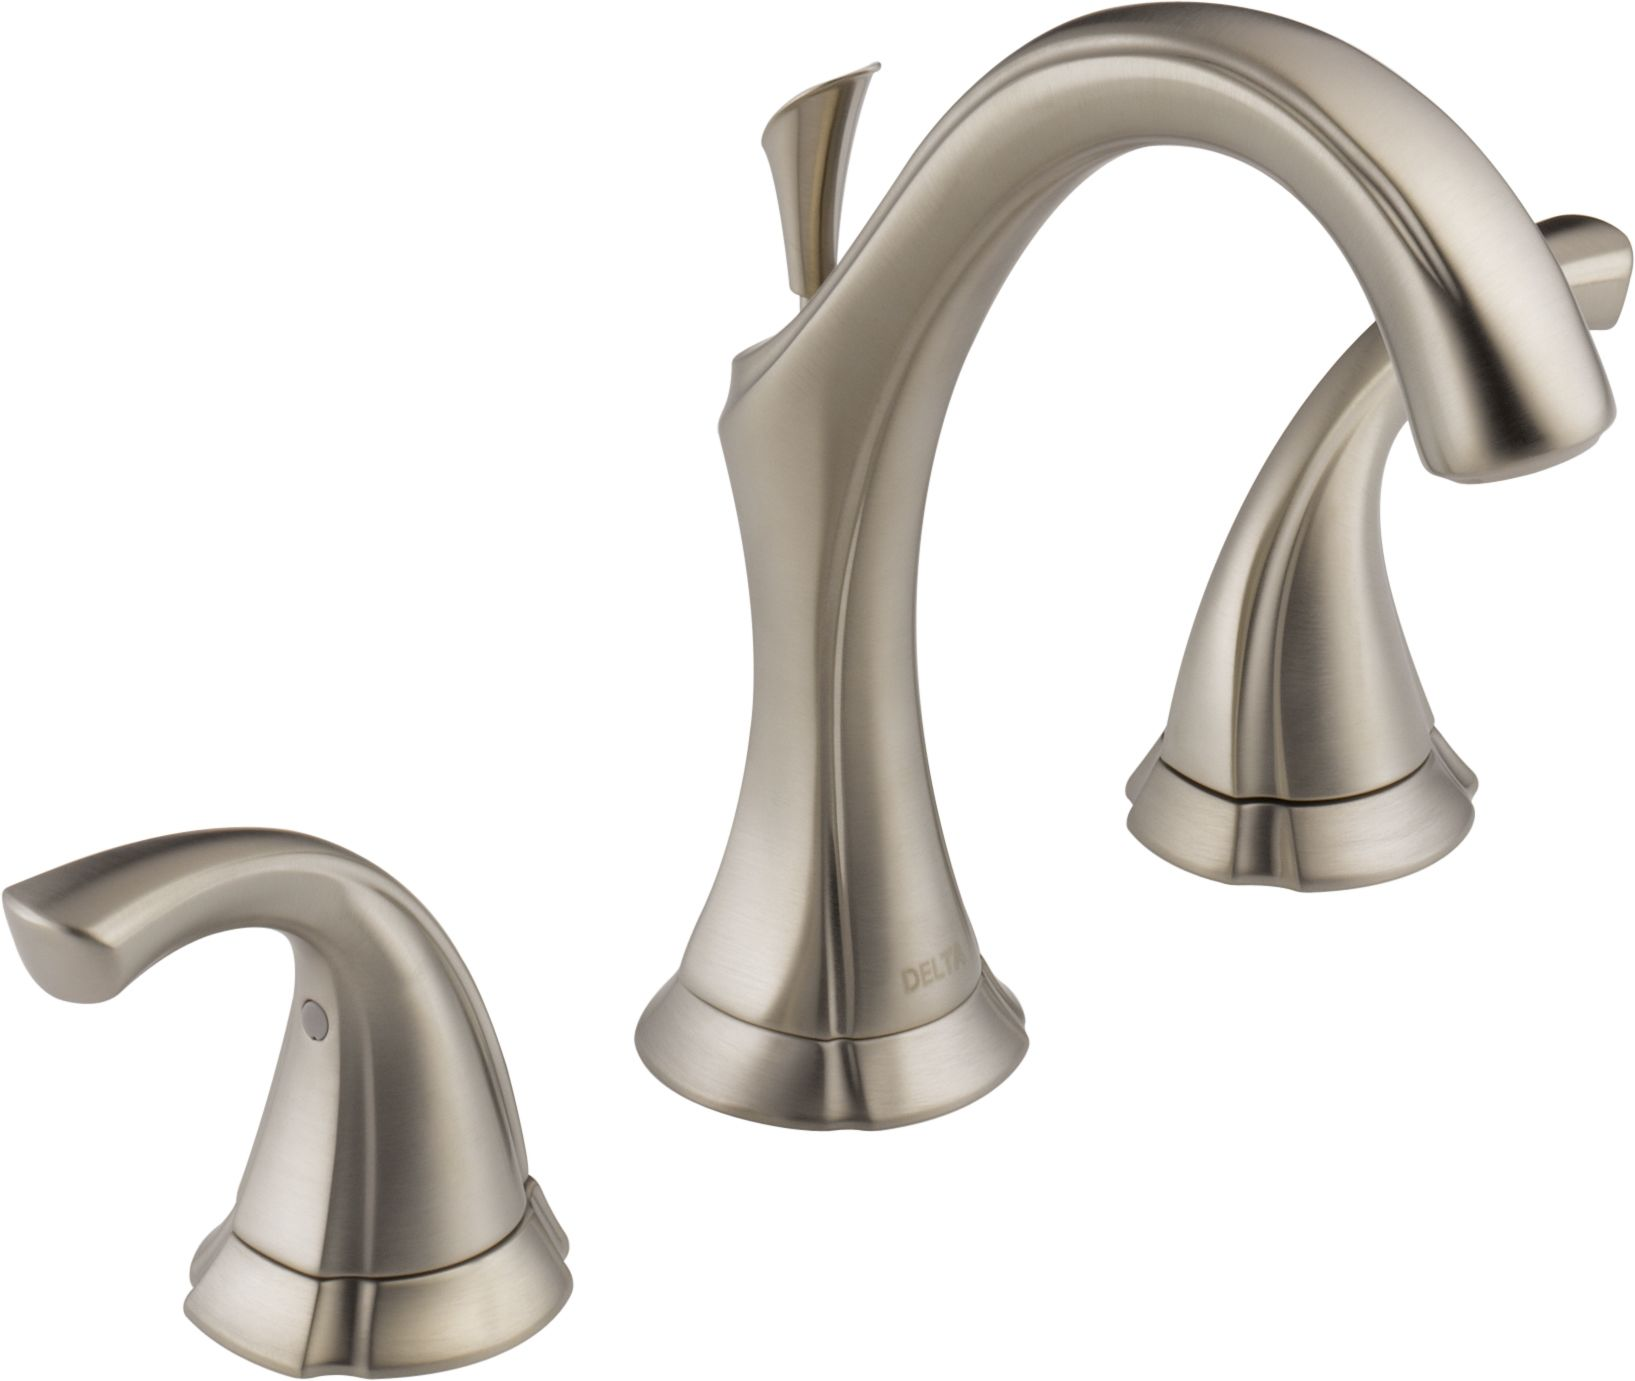 Delta Bathroom Faucets.Delta 3592lf